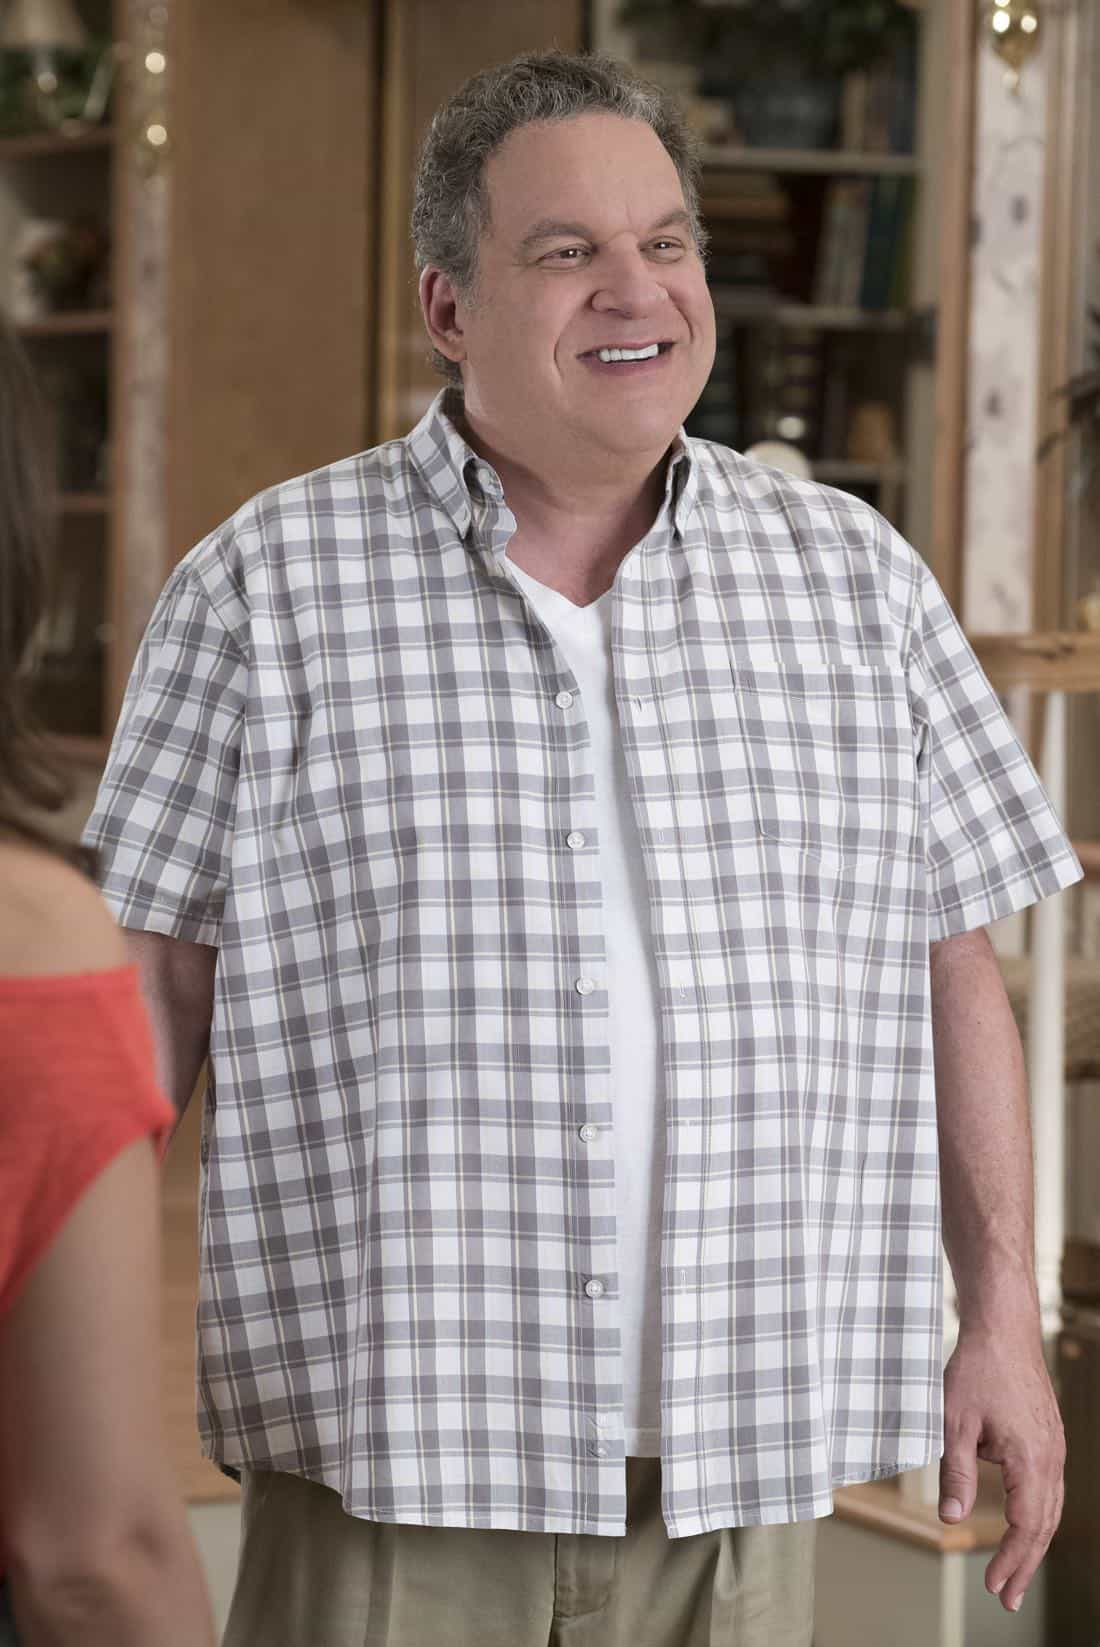 """THE GOLDBERGS - """"Hogan Is My Grandfather"""" - Adam is assigned a term paper on a great person in history, and he decides to make a movie about his grandfather but finds all of Pop's war stories mundane.  Pops takes matters into his own hands and decides to tell more exciting stories based on an old television series. Meanwhile, Erica returns home to confront Beverly for over-mothering her. Murray insists Beverly teach Erica and Barry basic life skills, but she worries Erica and Barry will be too independent, on """"The Goldbergs,"""" WEDNESDAY, OCTOBER 4 (8:00-8:30 p.m. EDT), on The ABC Television Network. (ABC/Ron Tom) JEFF GARLIN"""